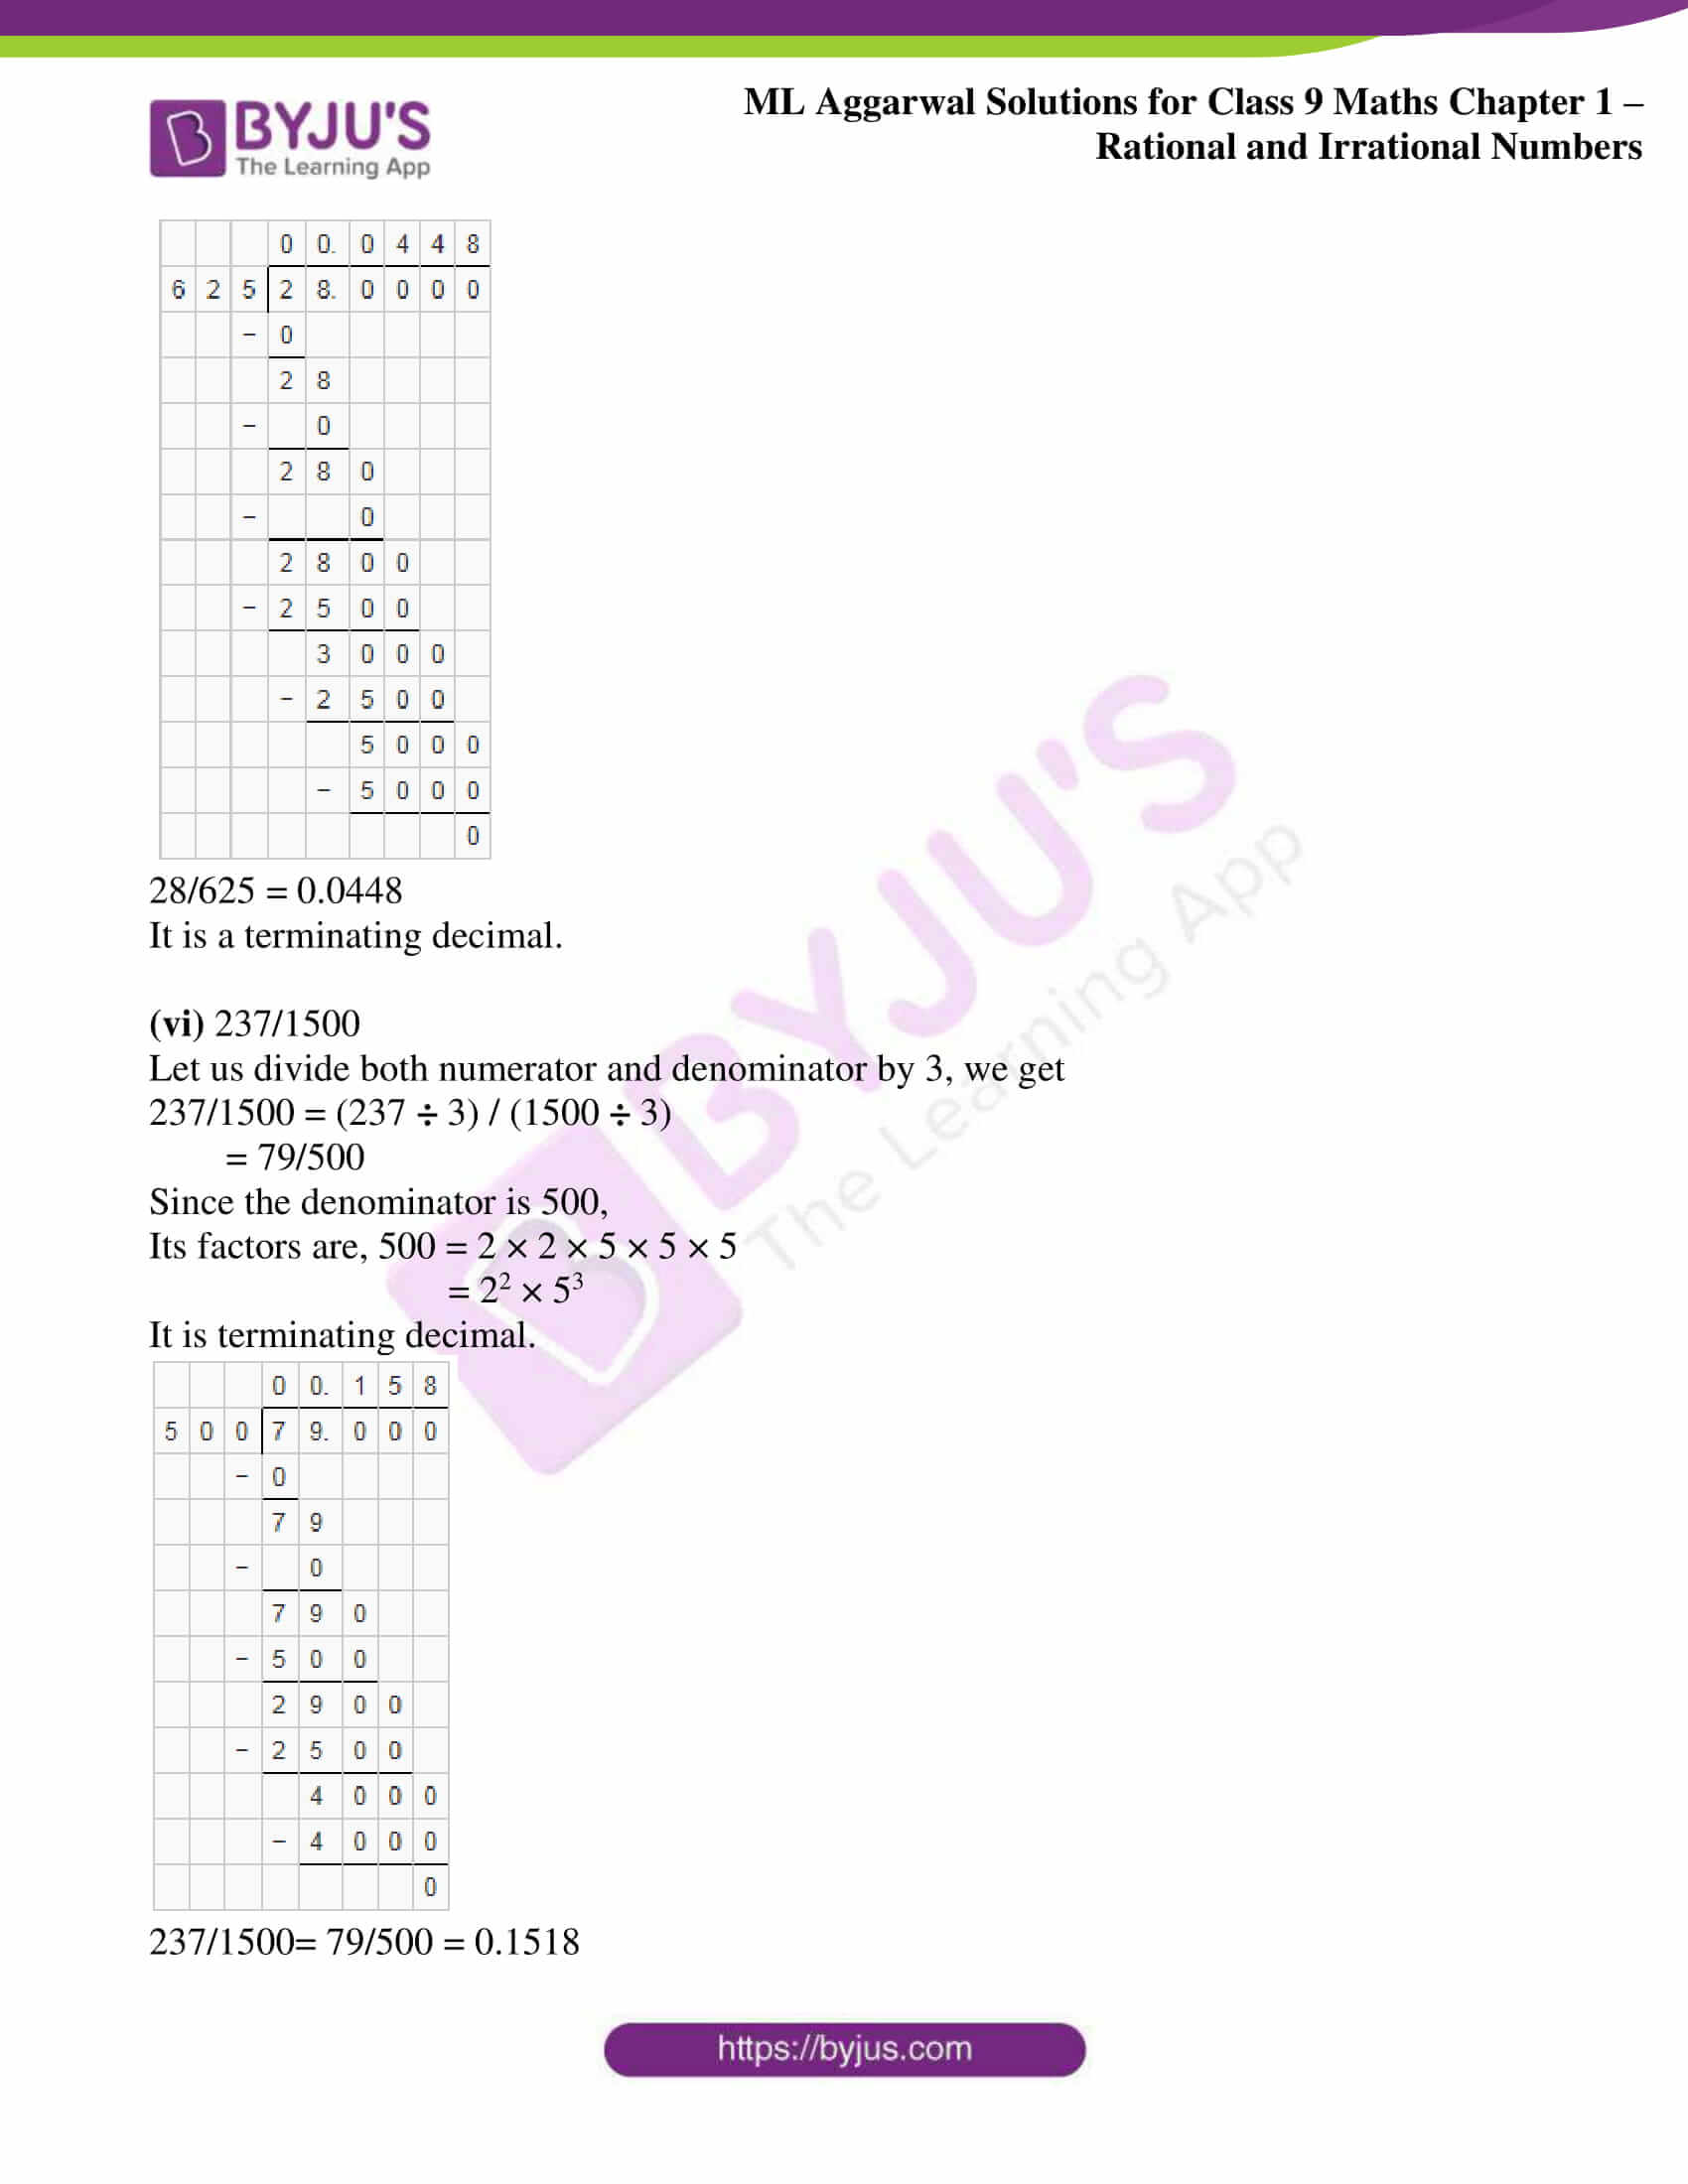 ml aggarwal solutions for class 9 maths chapter 1 26